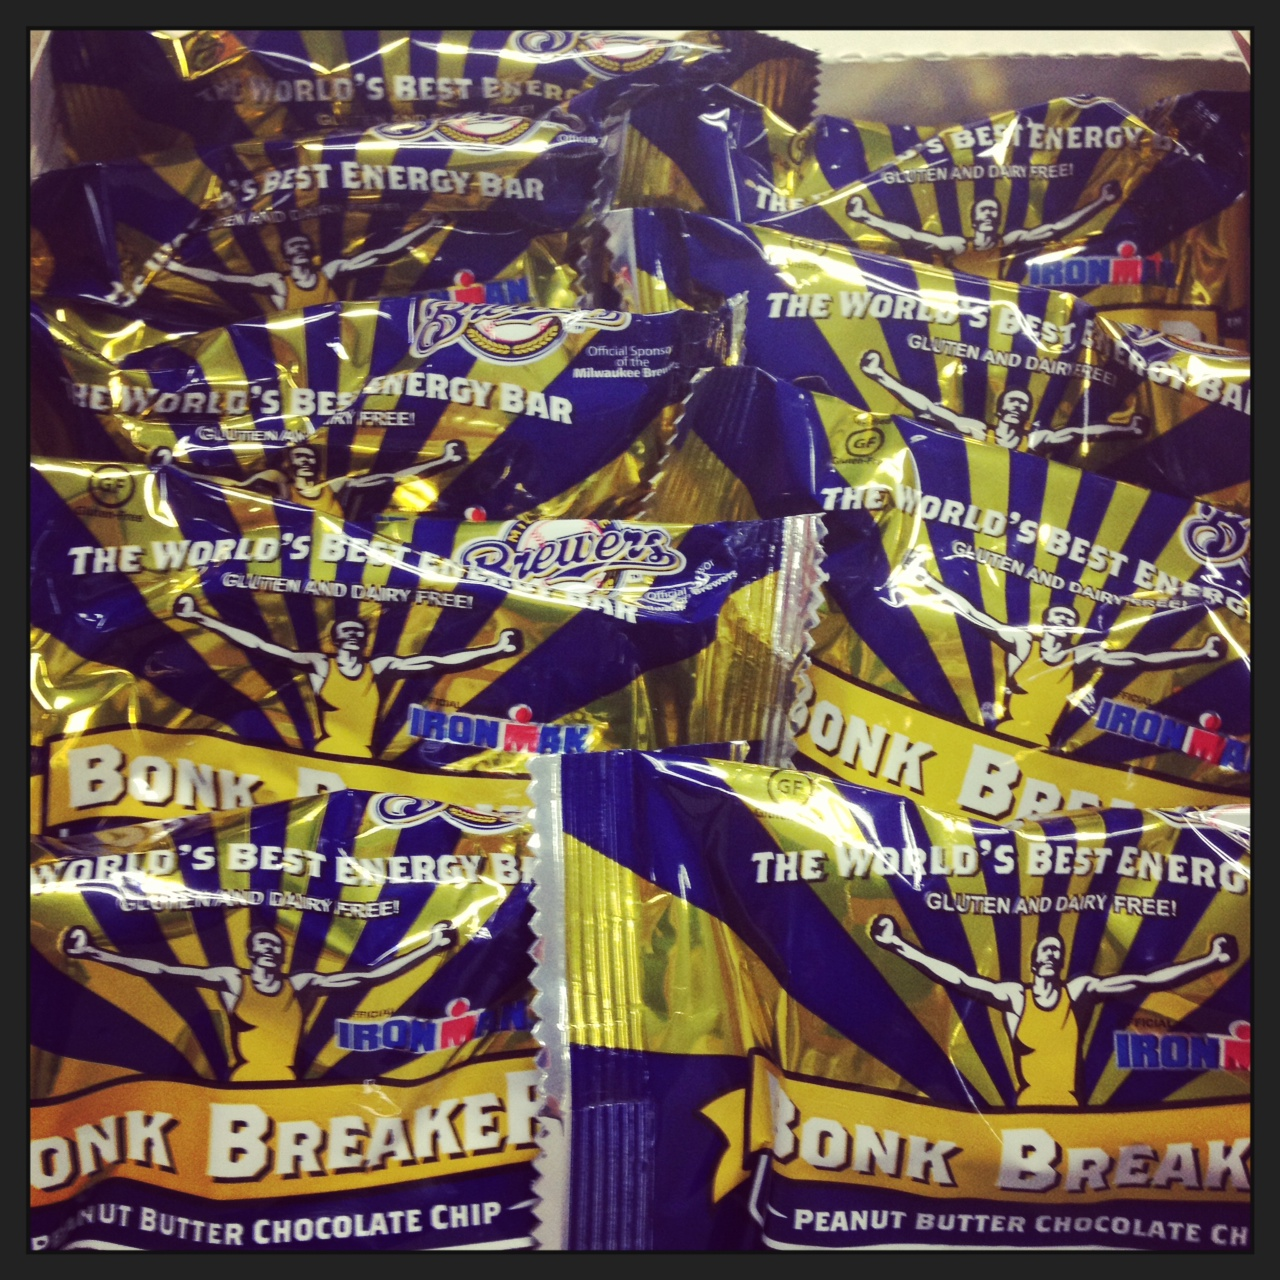 Here's the Brewers-branded Bonk Breaker (say that 3x fast!). The Peanut Butter Chocolate Chip flavor will be sold at select concession stands and the Brewers Team Stores at Miller Park.